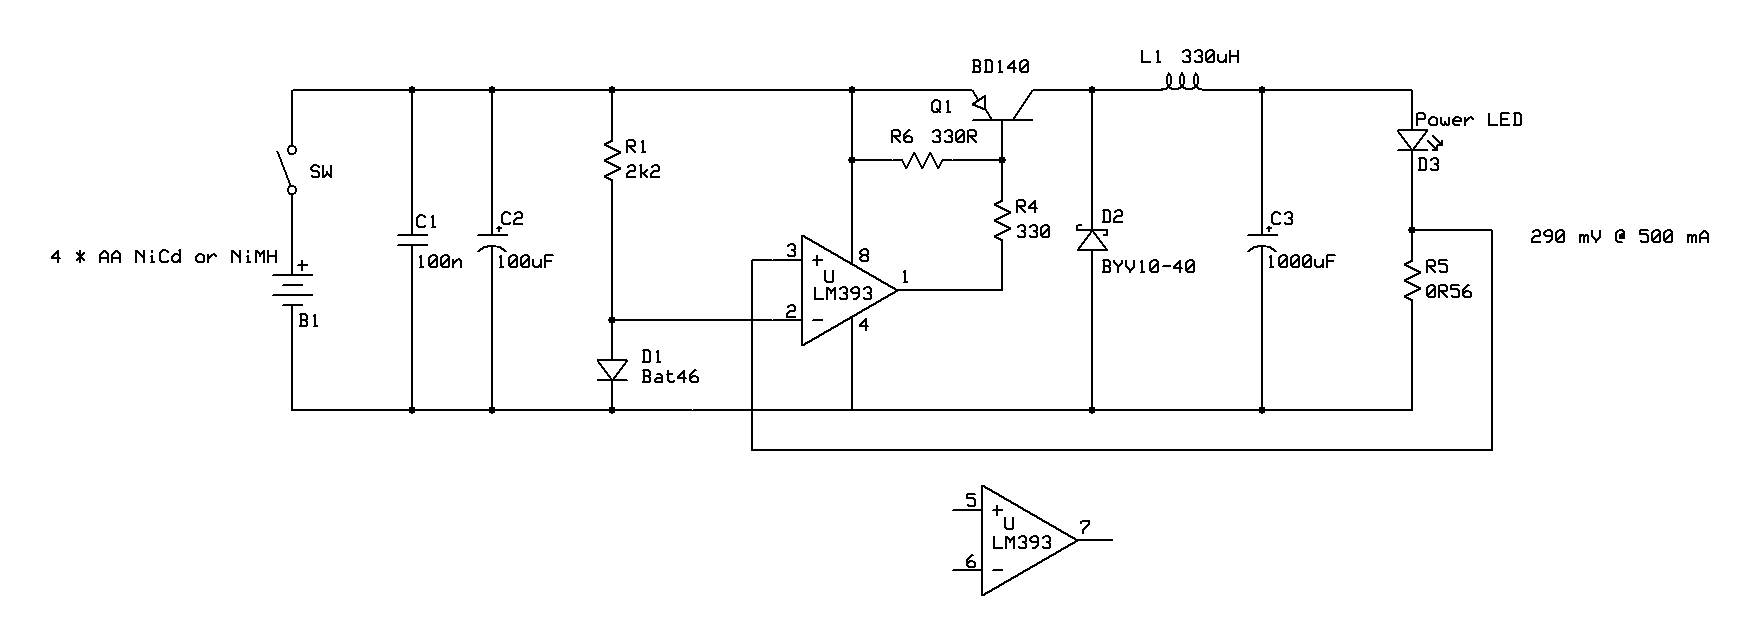 Constant Current Source Avr Freaks Amp Injector Circuit Diagram Super Edited Version With Less Components